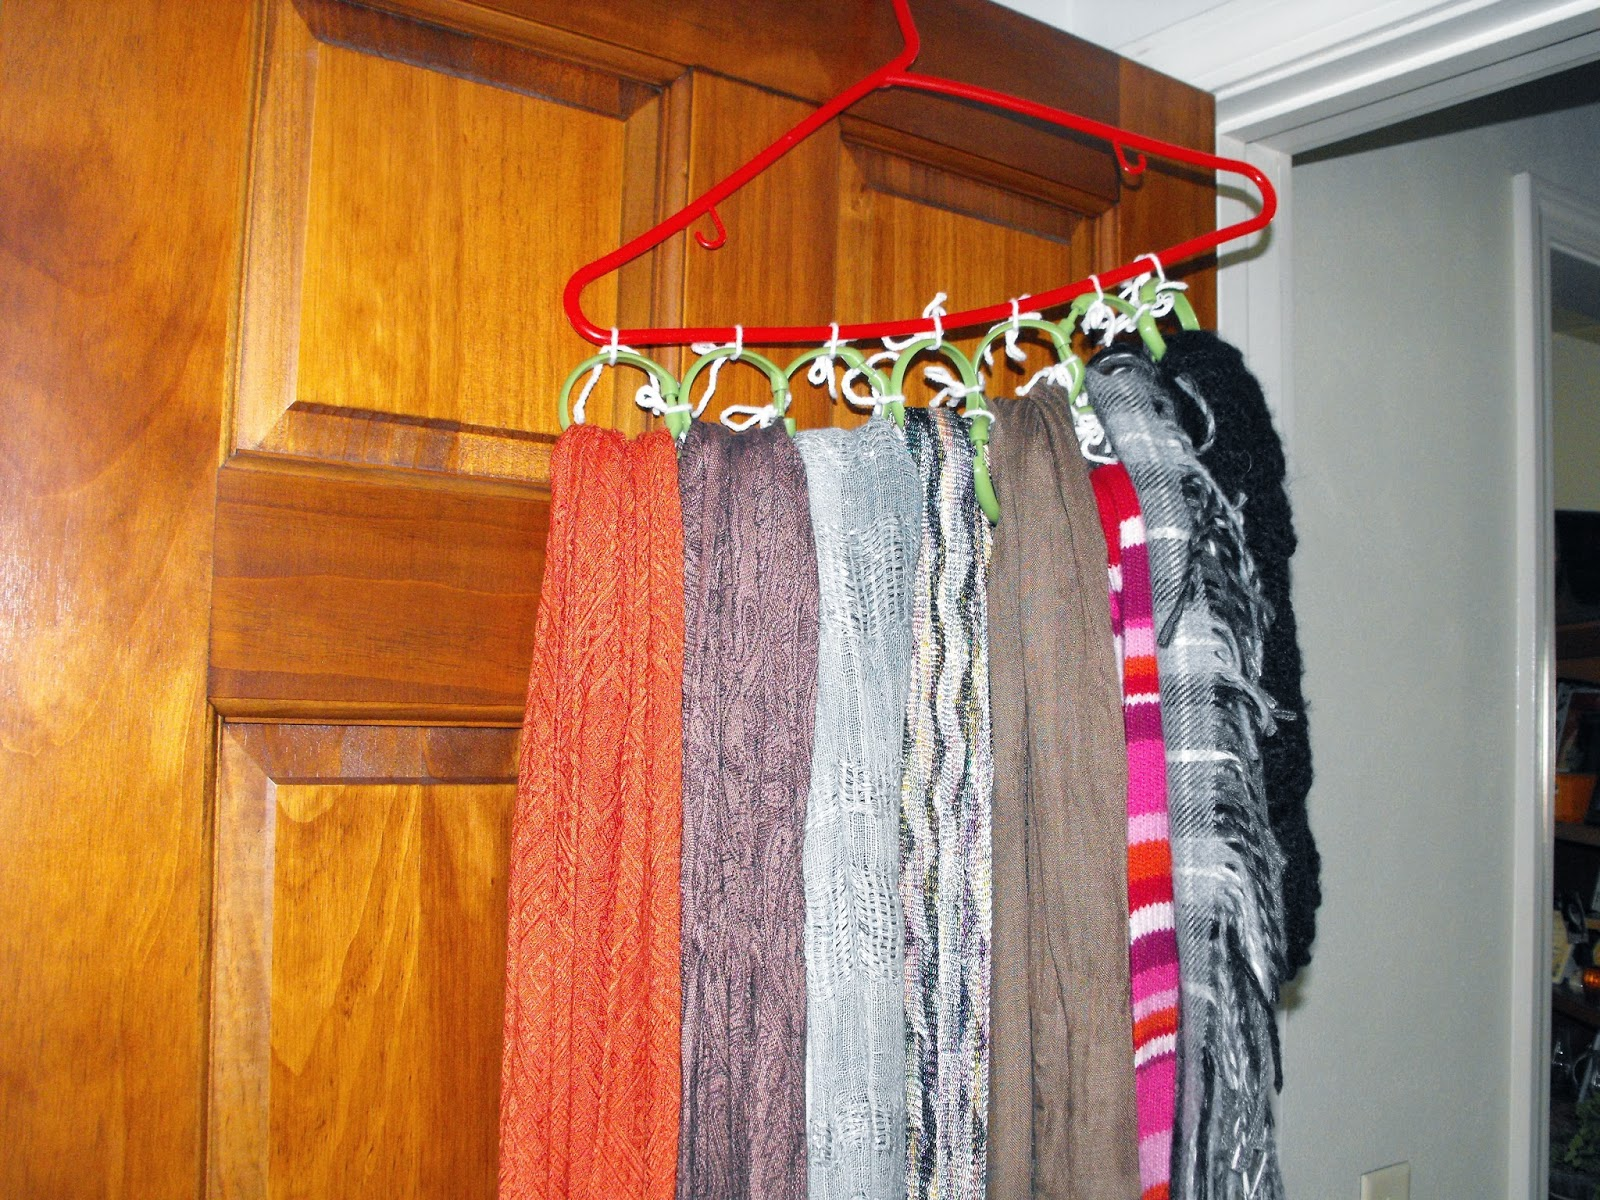 Smile for no reason: A DIY To Hold All Those Scarves